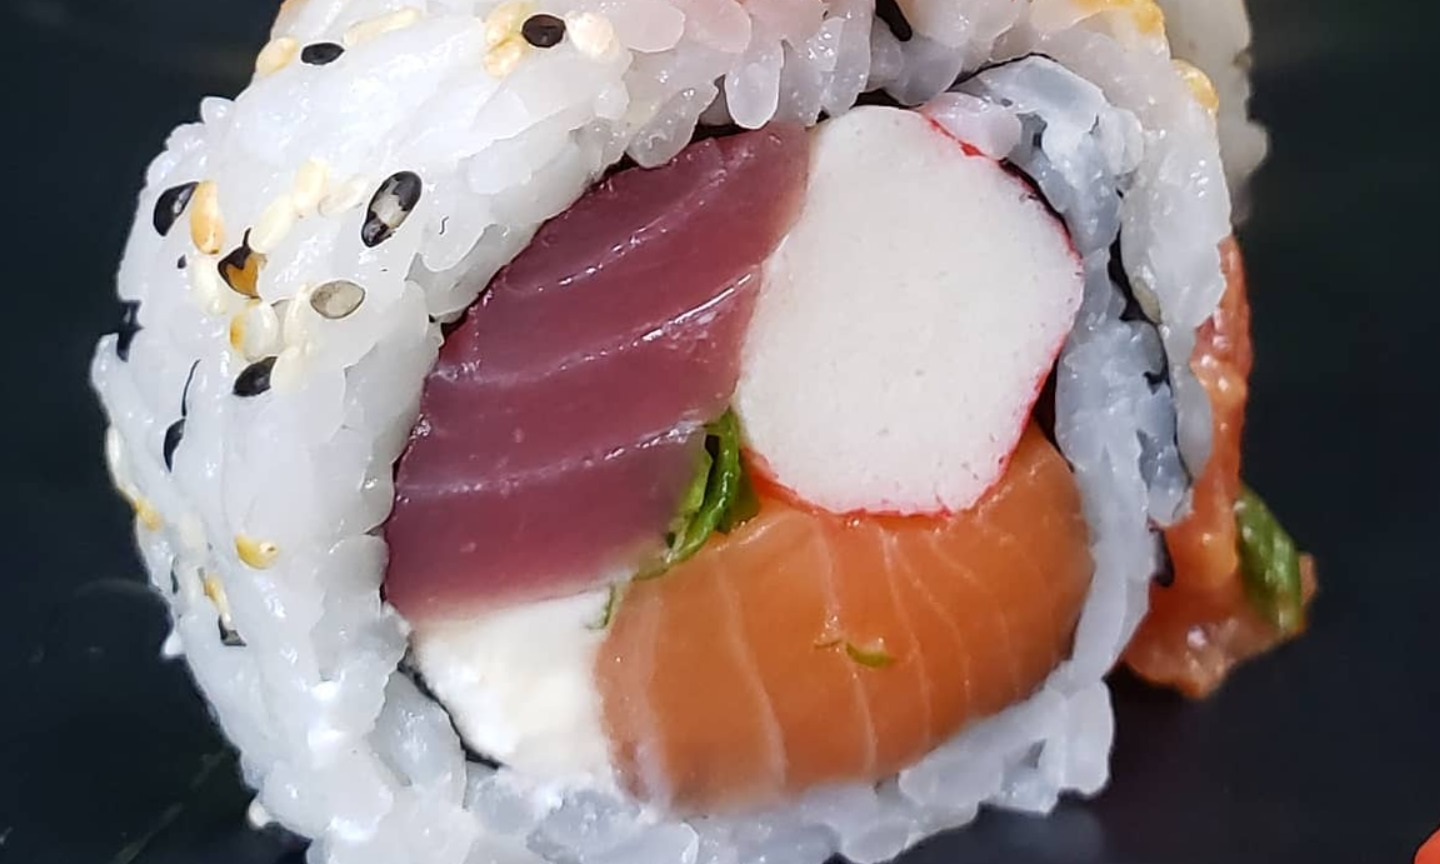 Nikkei Market - The Sexiest Sushi in PTY